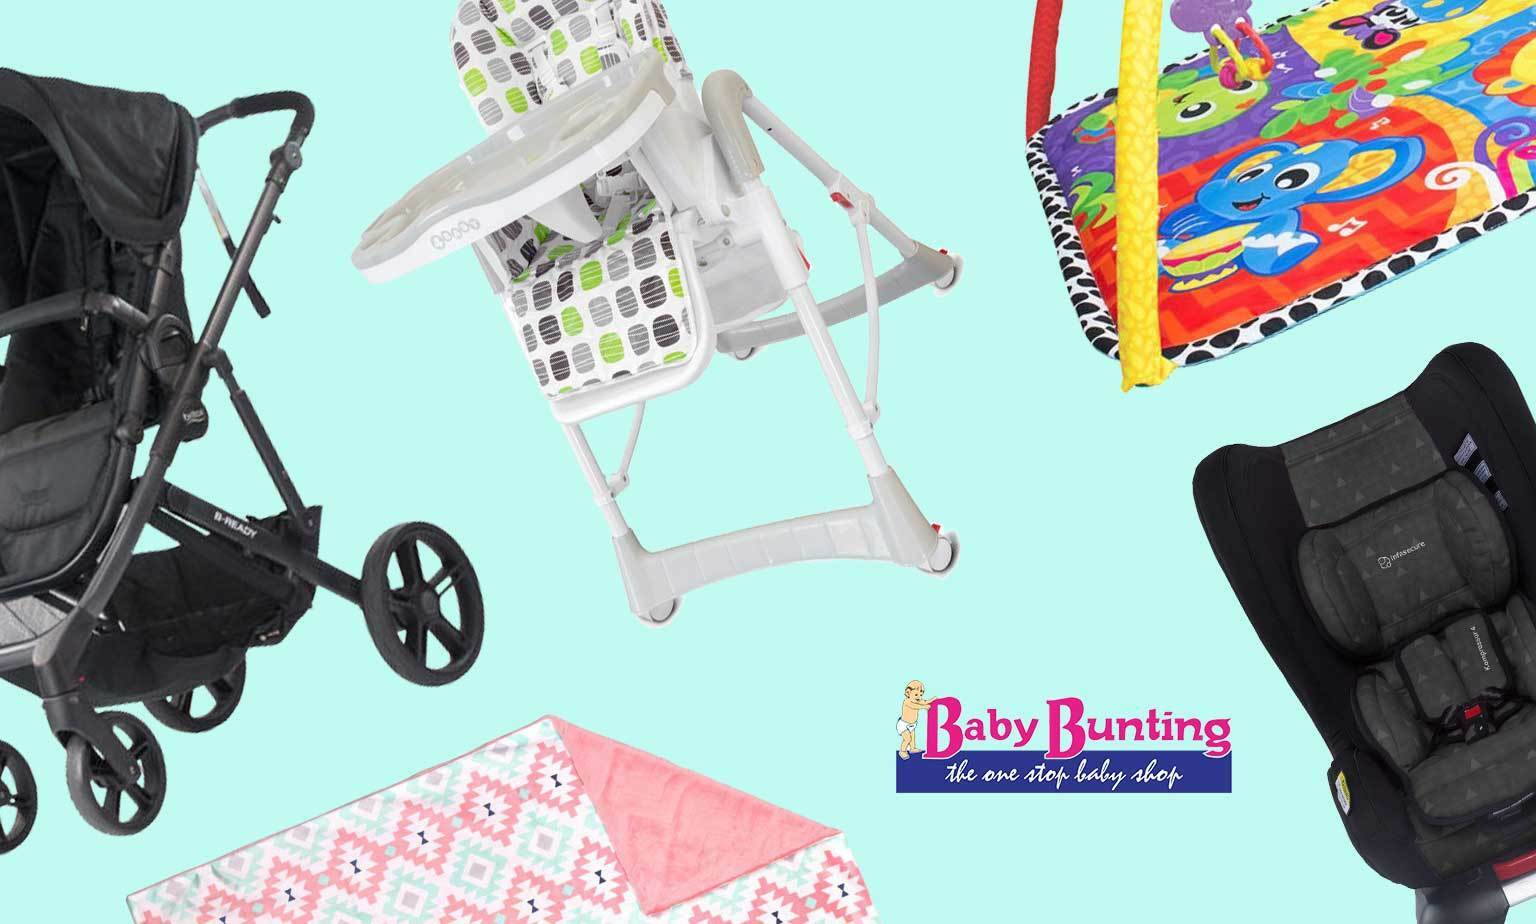 48-Hour Baby Frenzy is On!